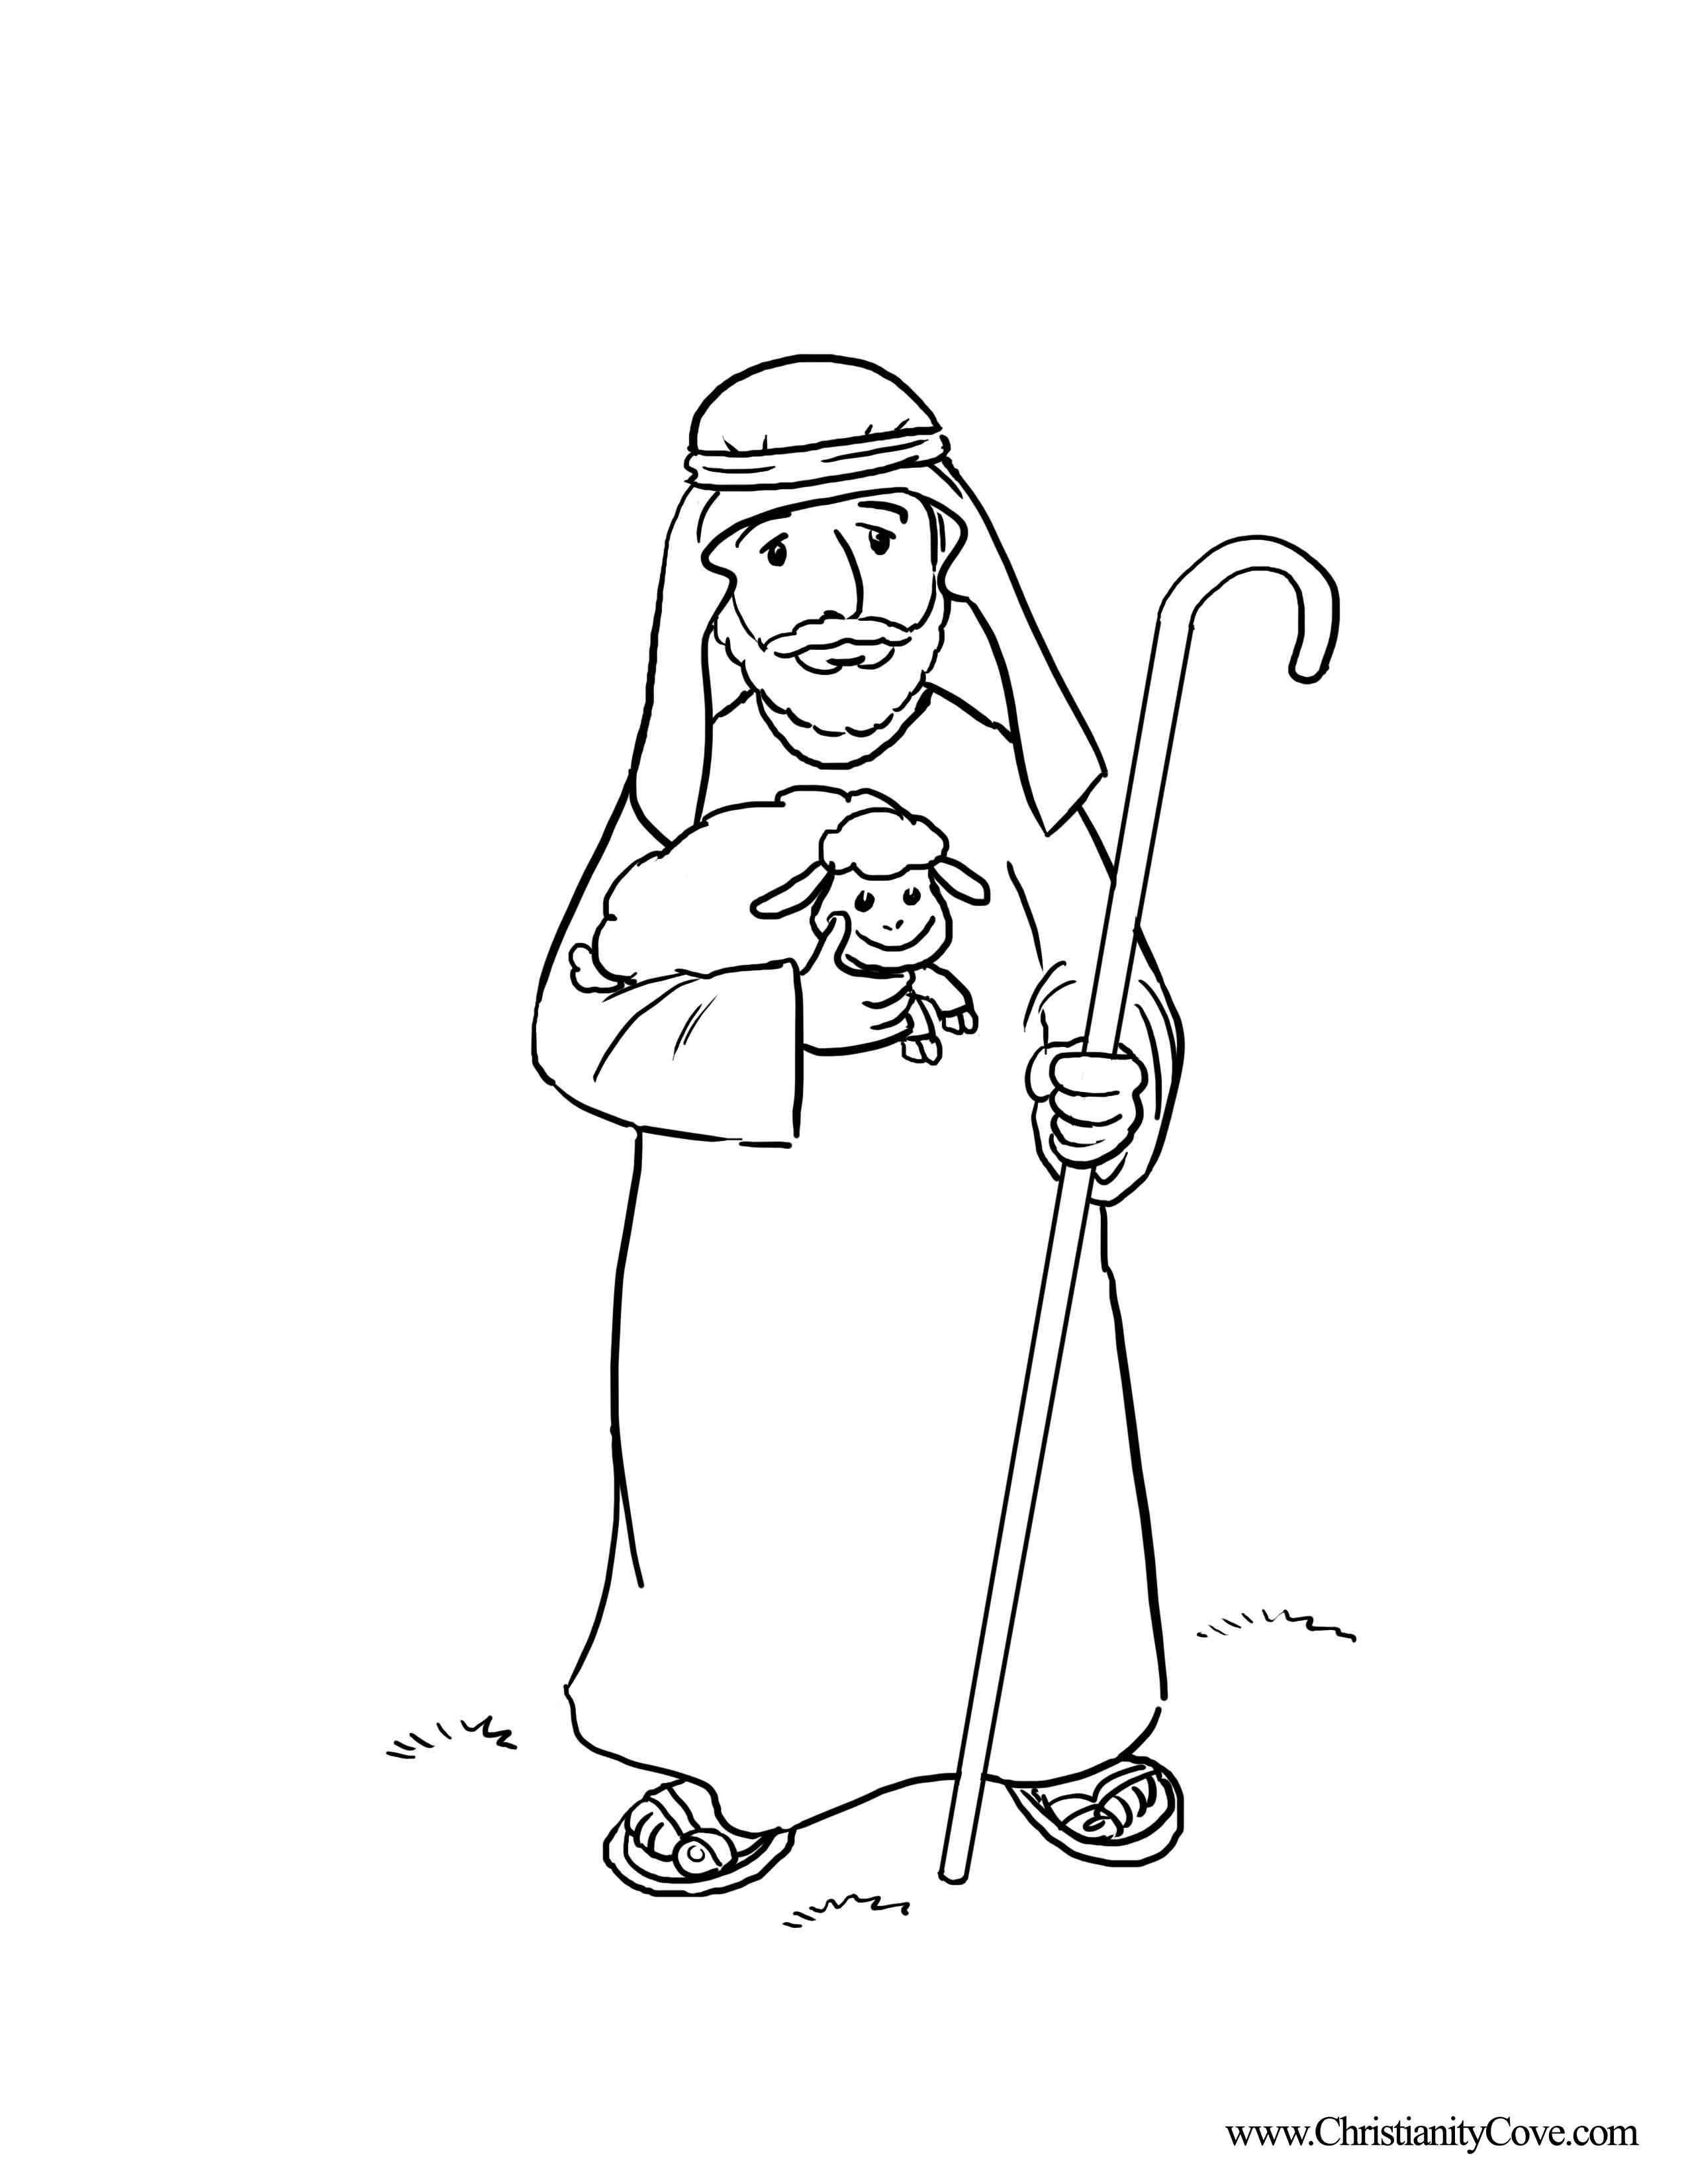 god is my shepherd coloring pages | The Lord Is My Shepherd Coloring Pages - Coloring Home